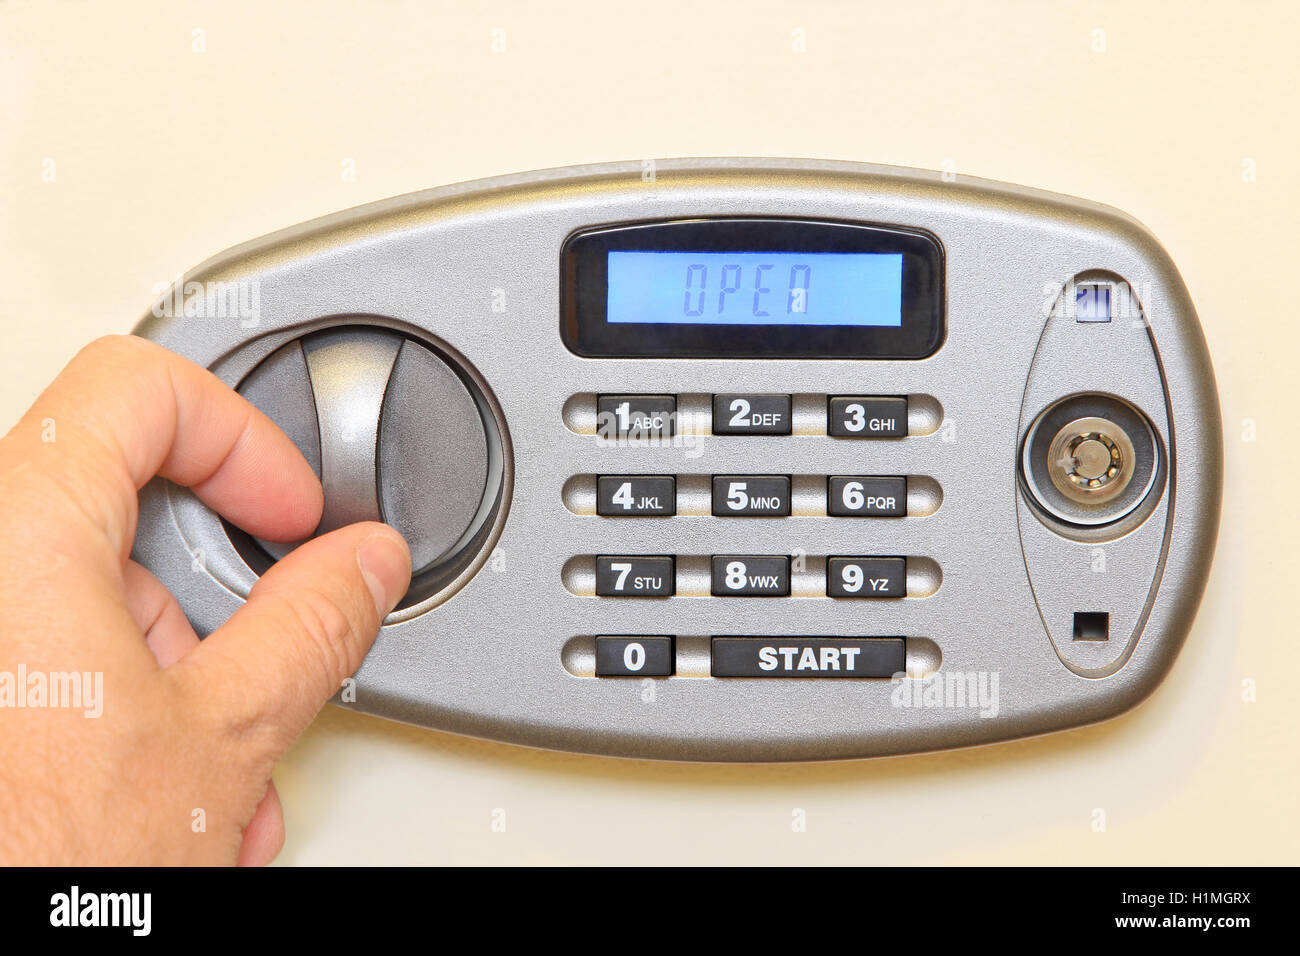 Man hand open of electronic home safe.Closeup. - Stock Image